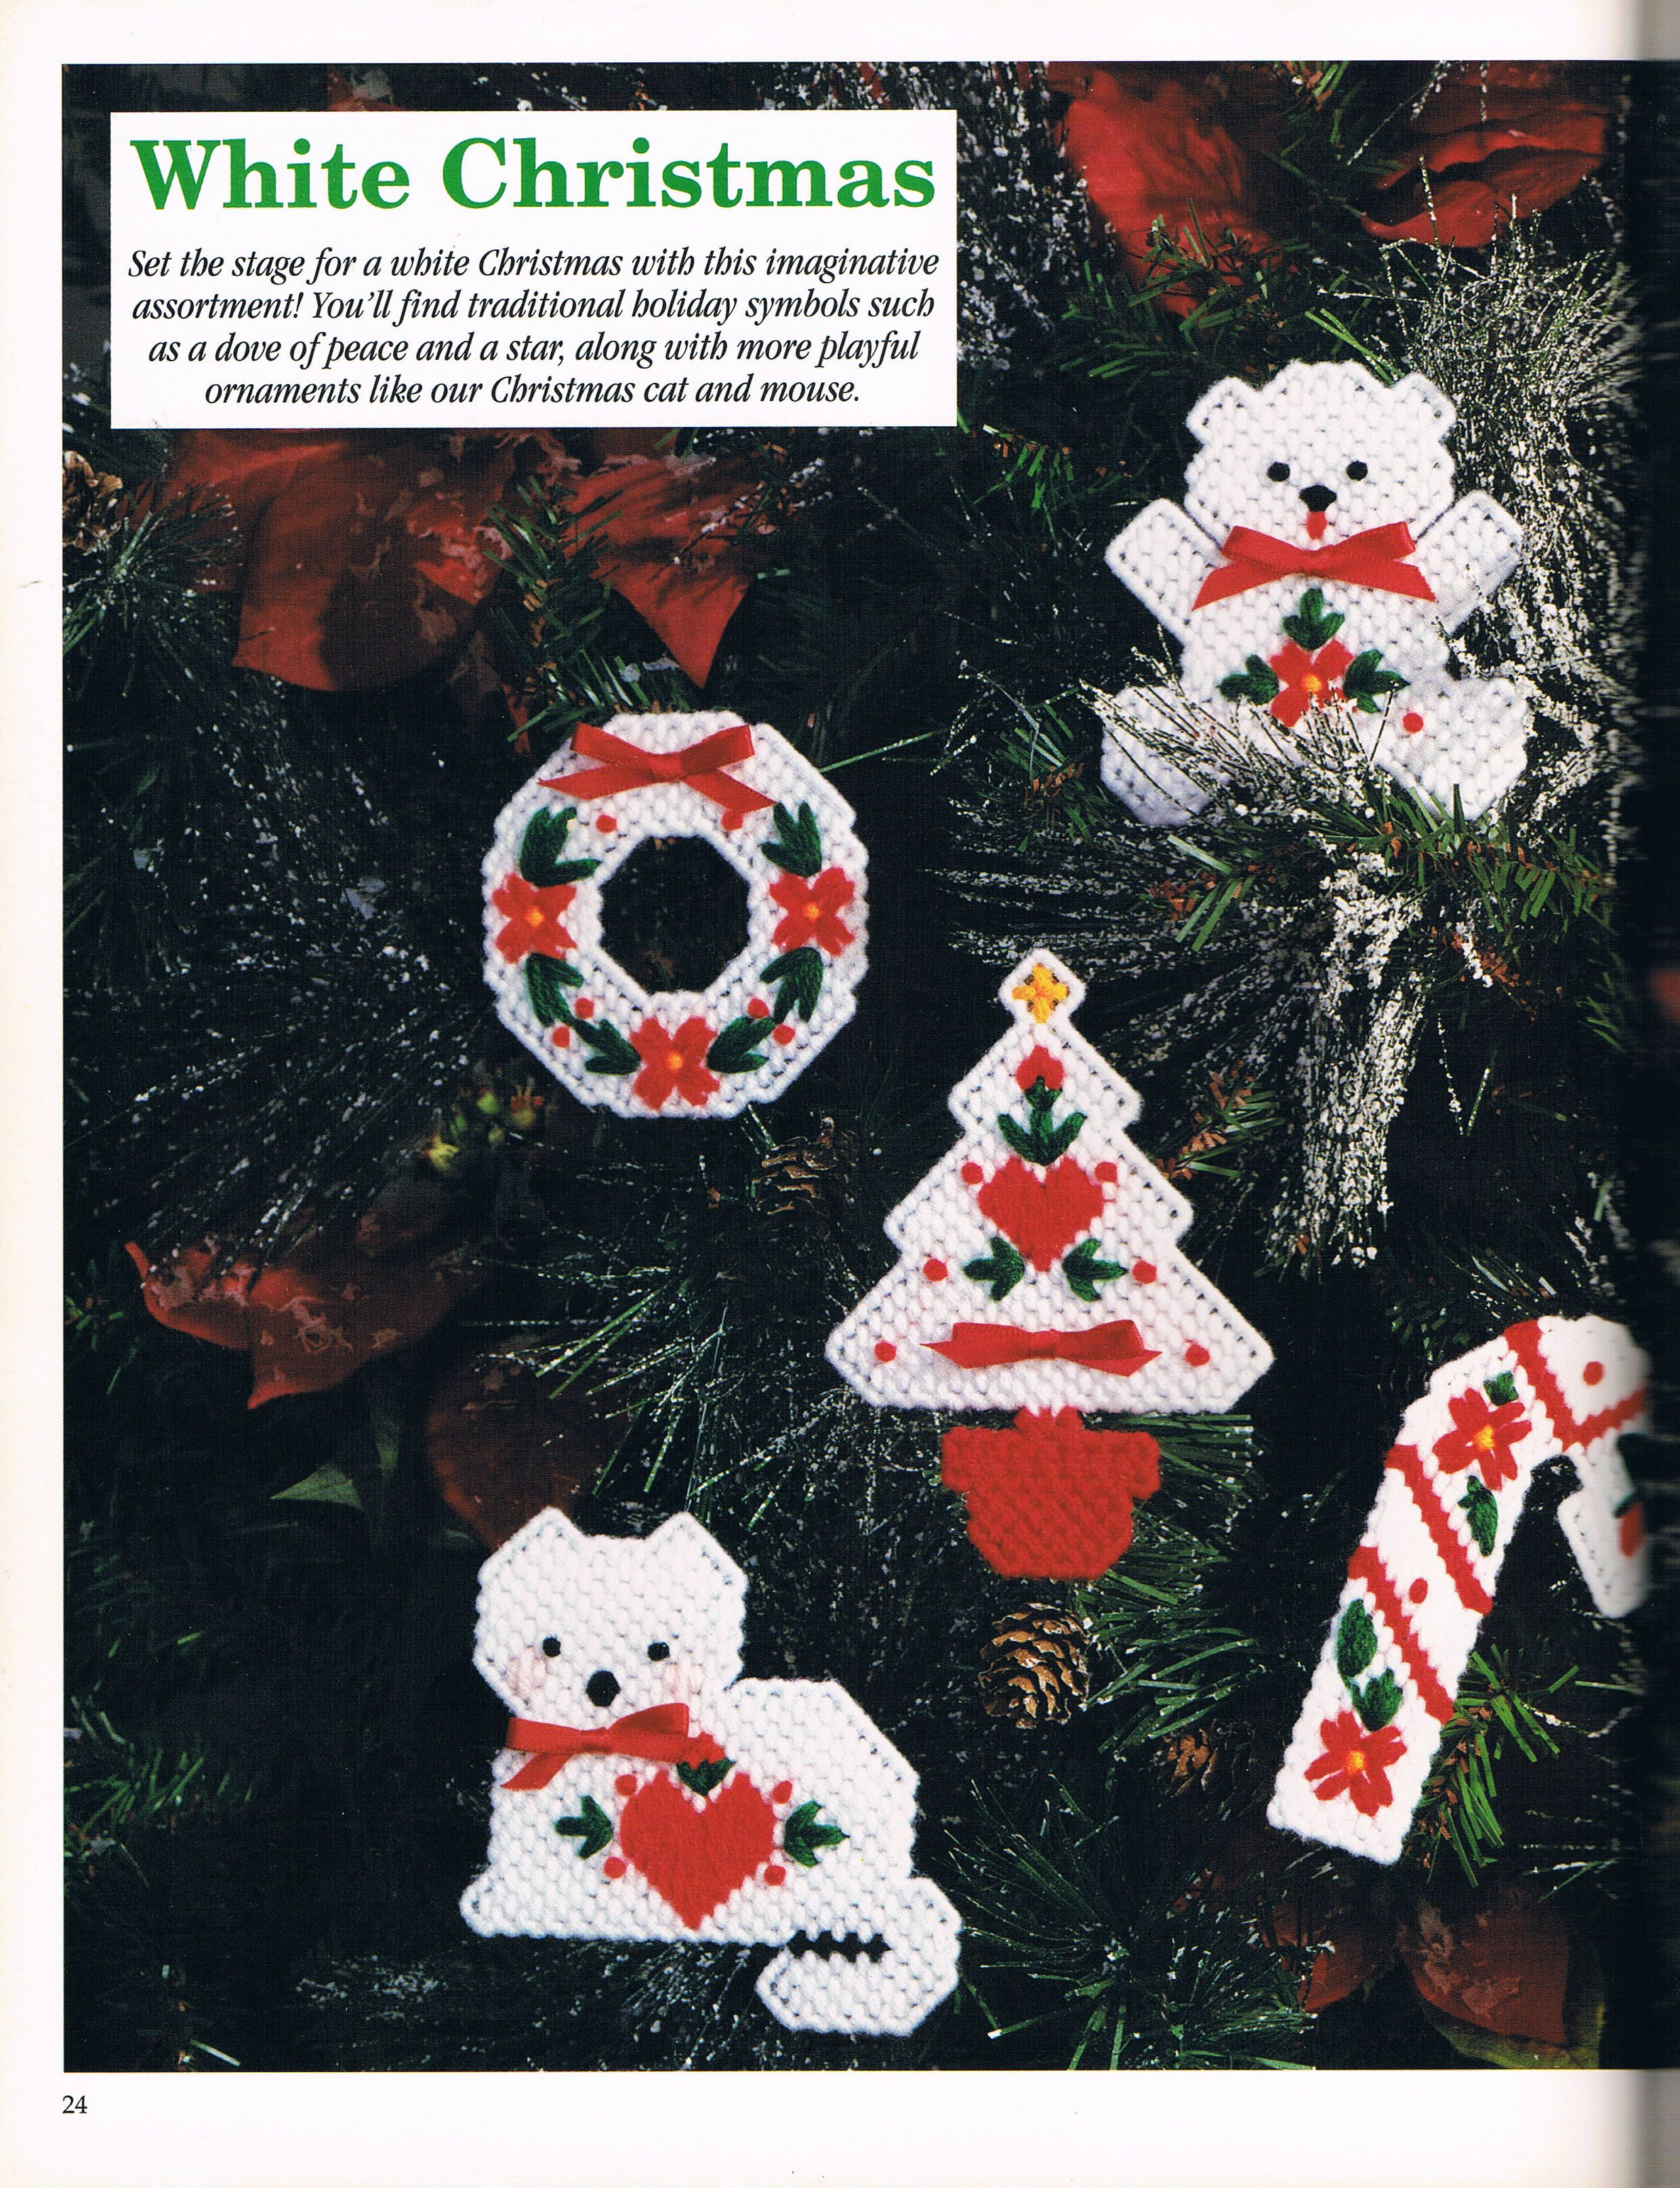 White Christmas Ornaments 1 4 Plastic Canvas Ornaments Plastic Canvas Christmas Christmas Stocking Ornament